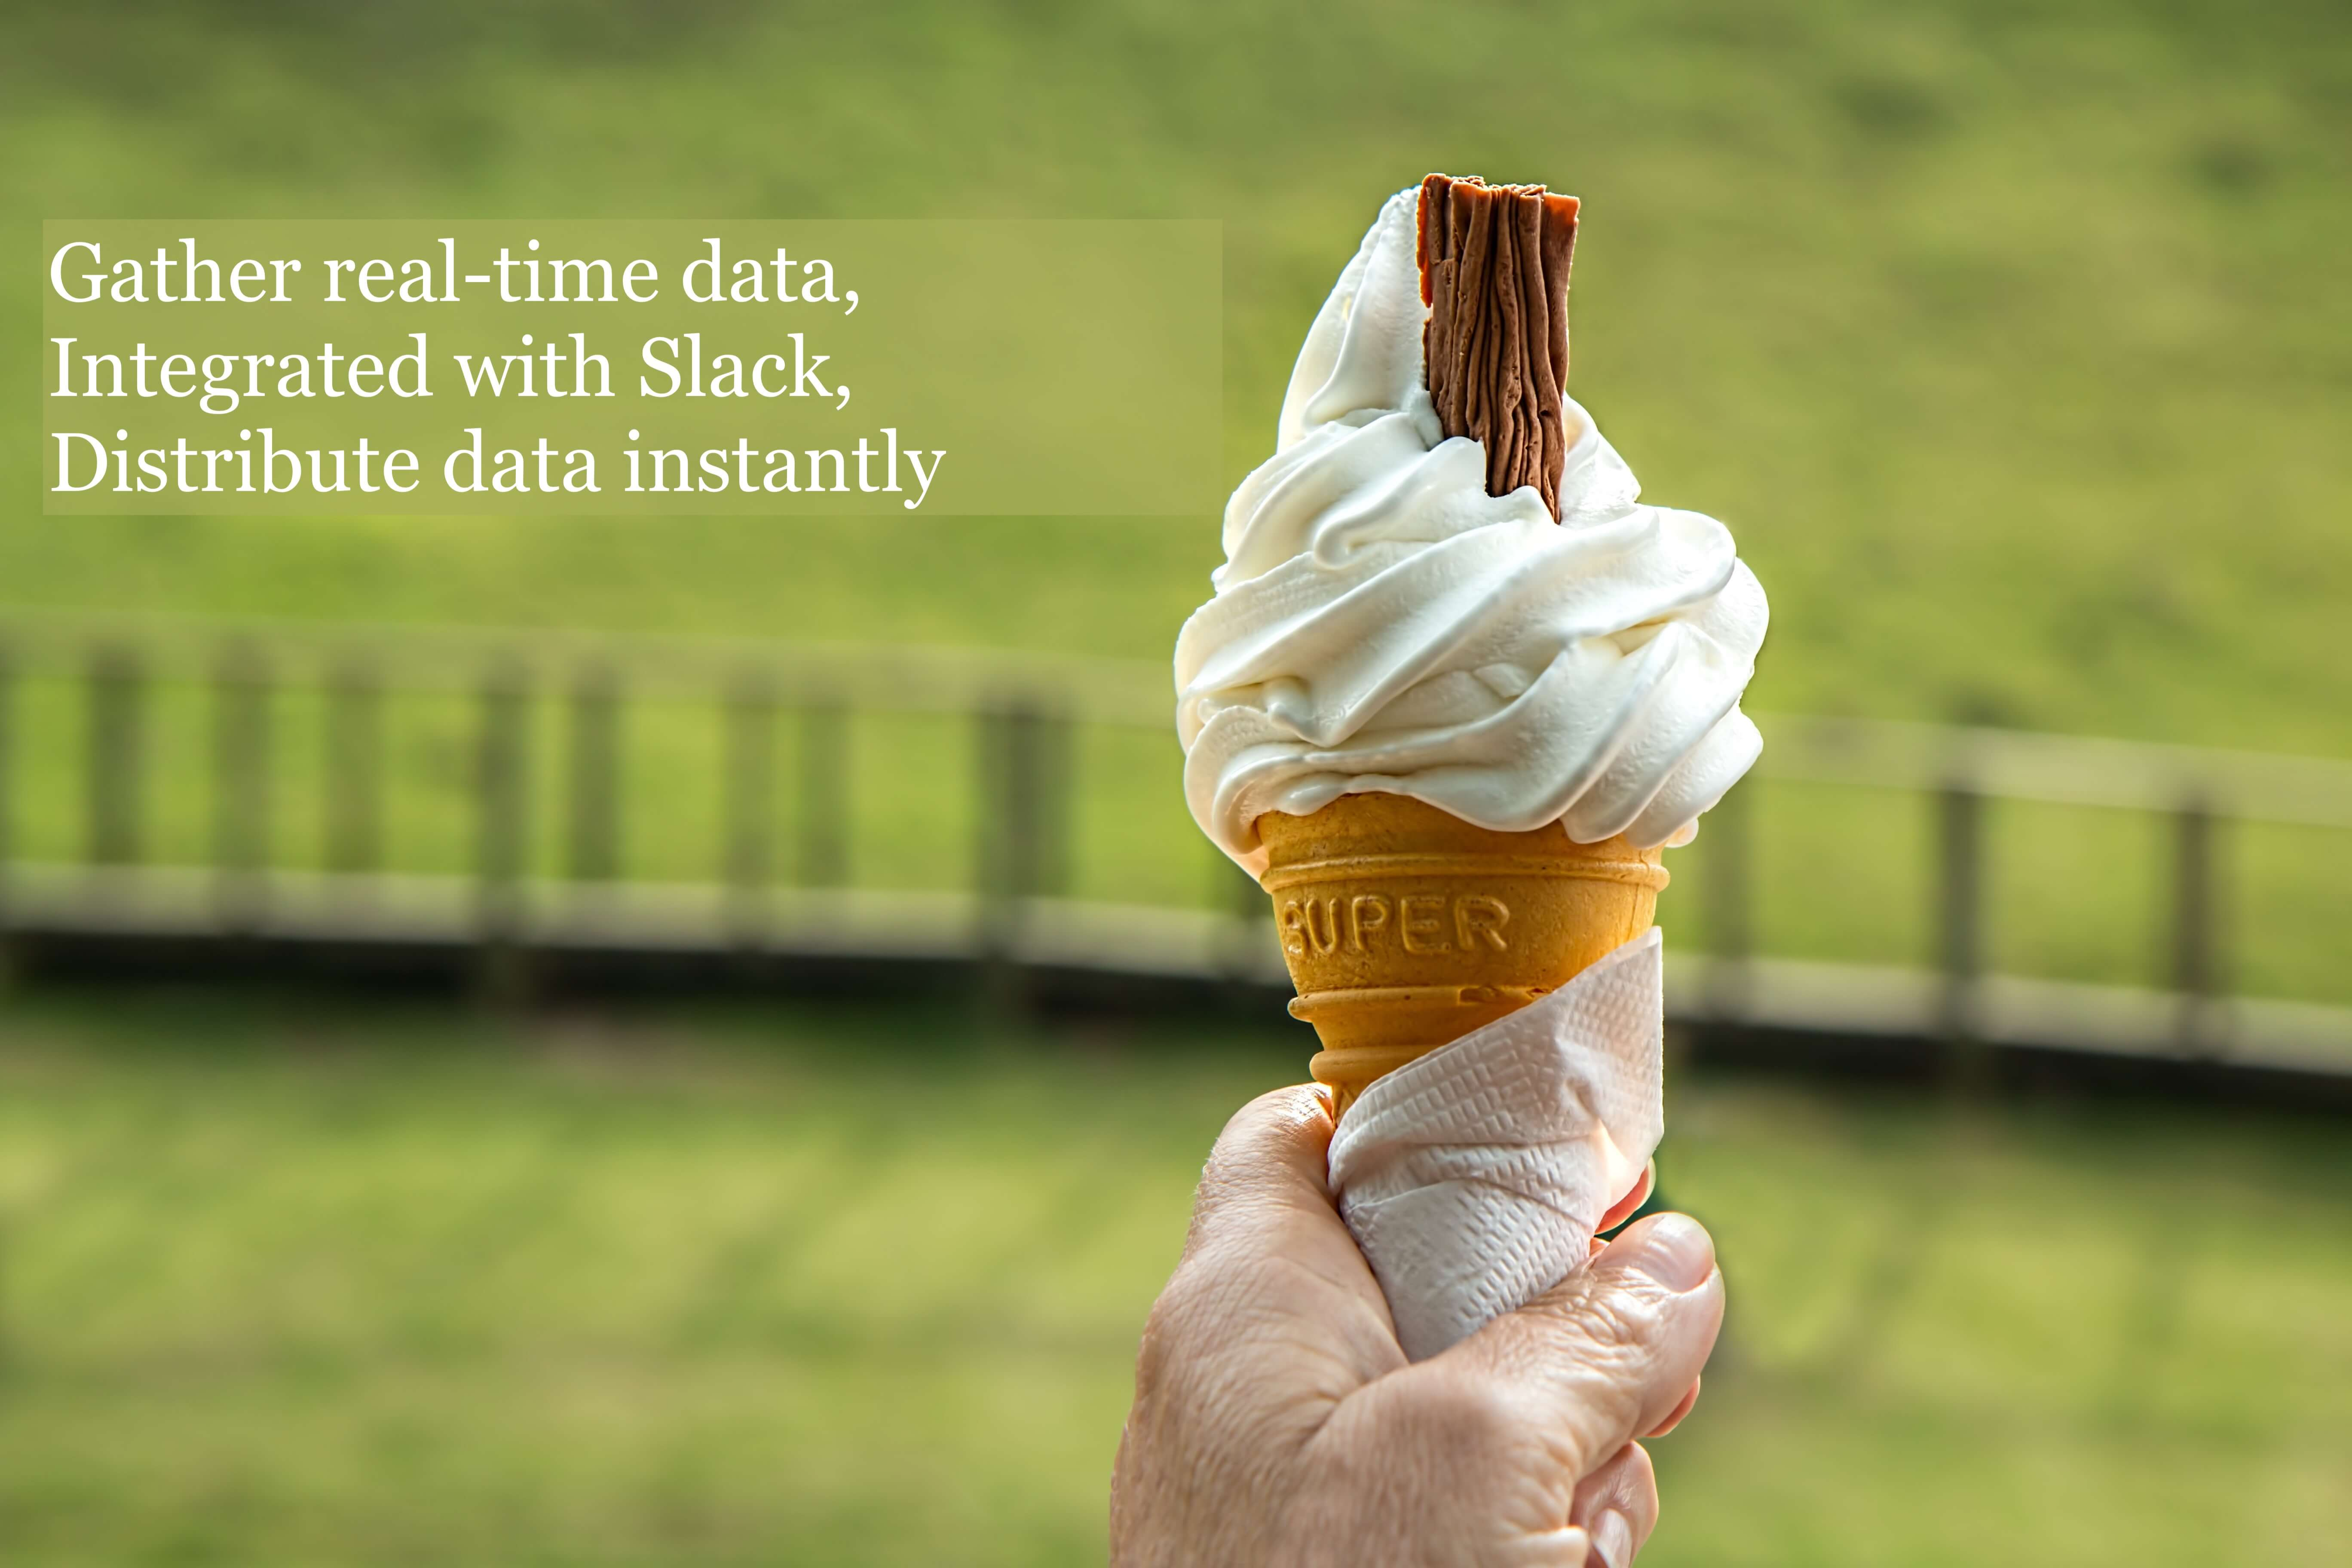 Delighted gives you a fantastic platform where you can gather real-time and actionable data the fastest and easiest.